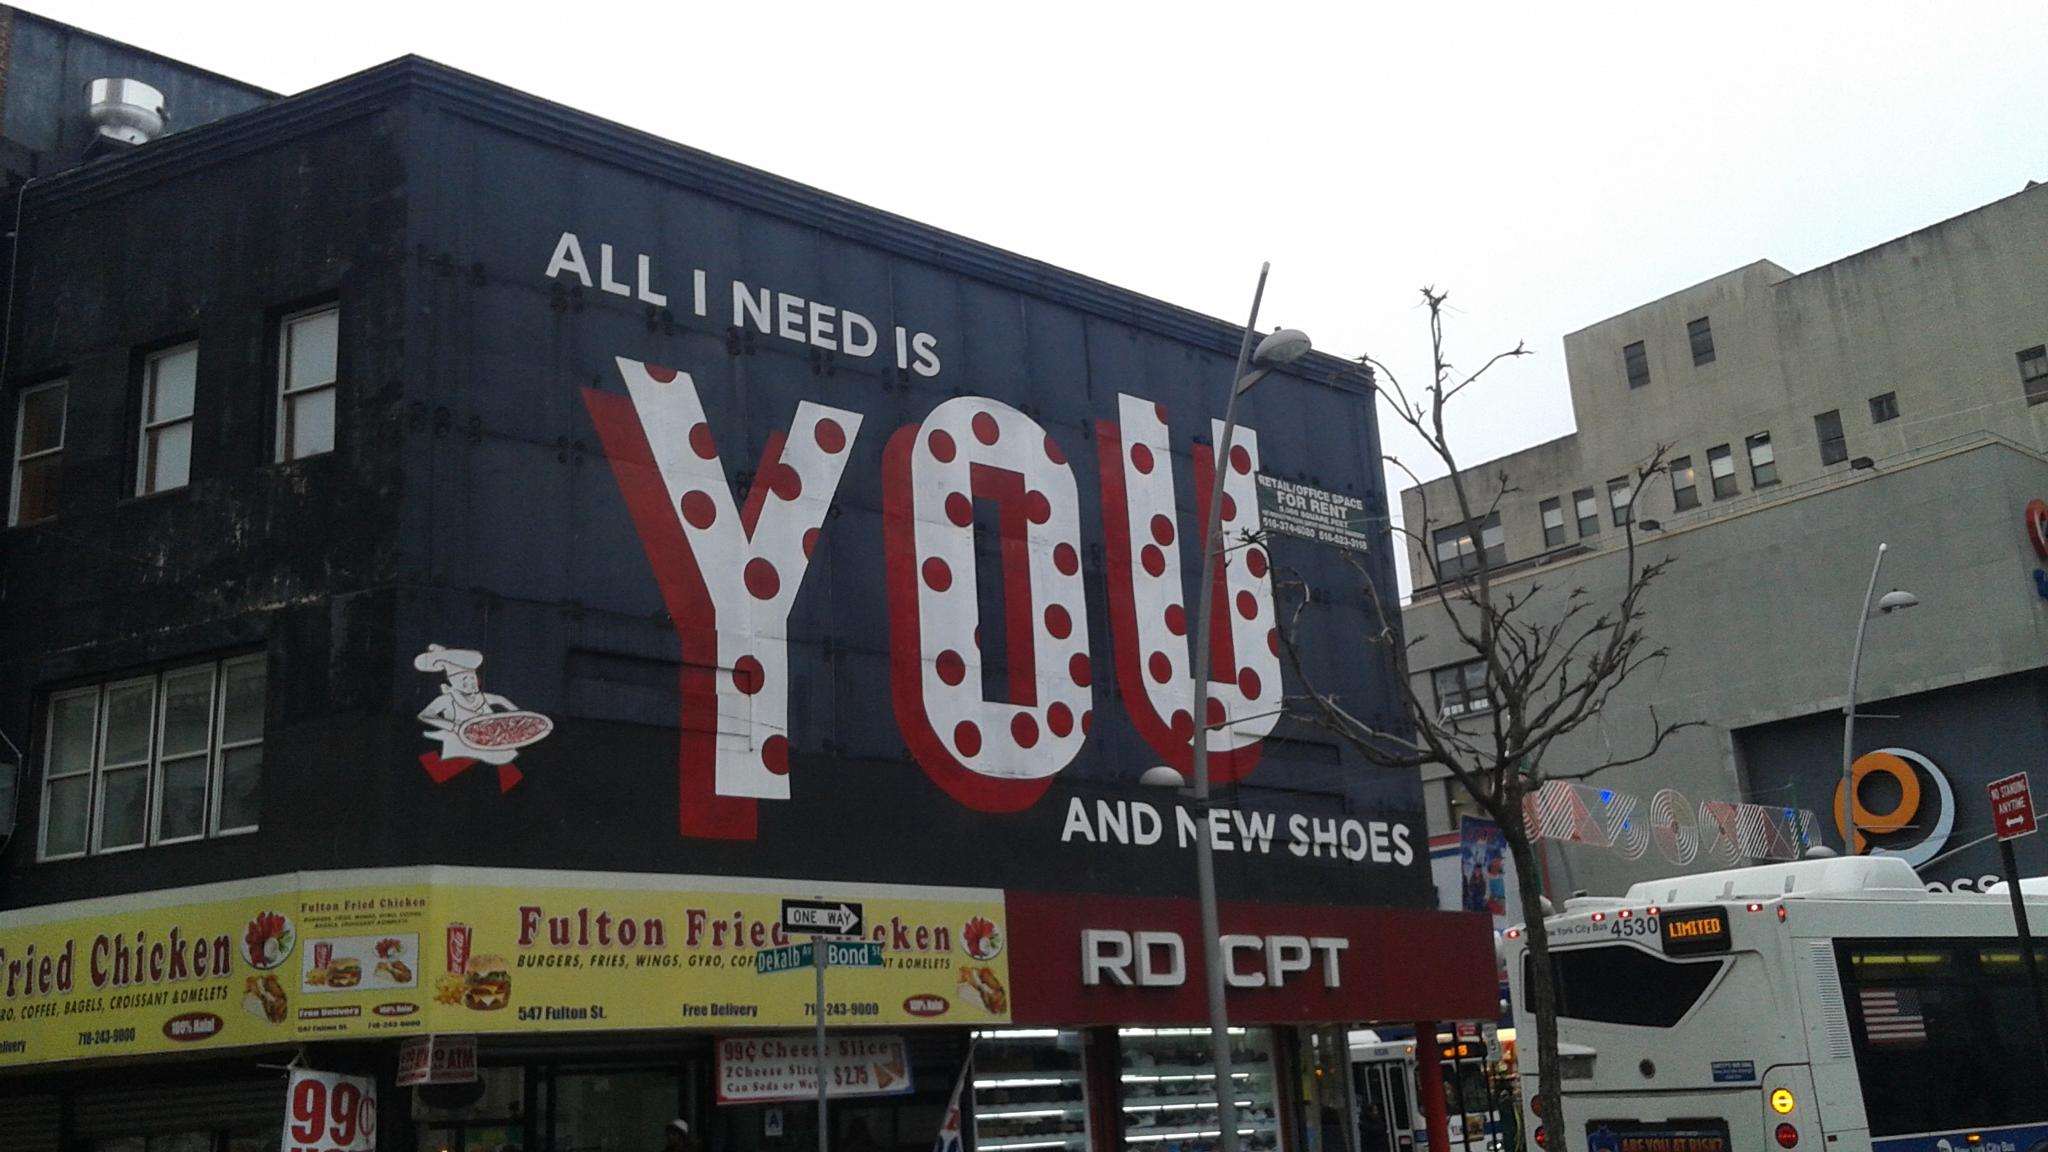 All I need is you.. and shoes!! by Diana Marenfeld